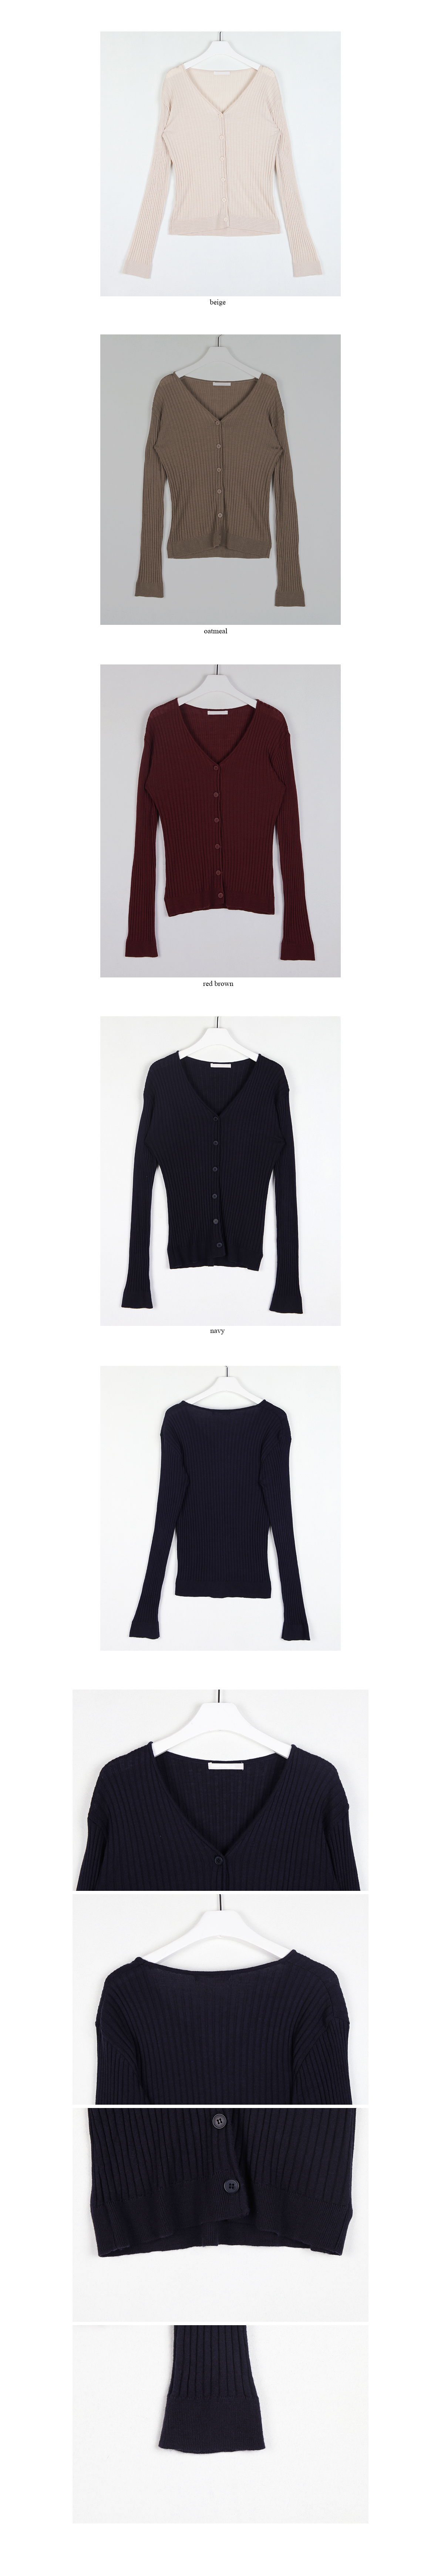 jazz knit cardigan (4colors)